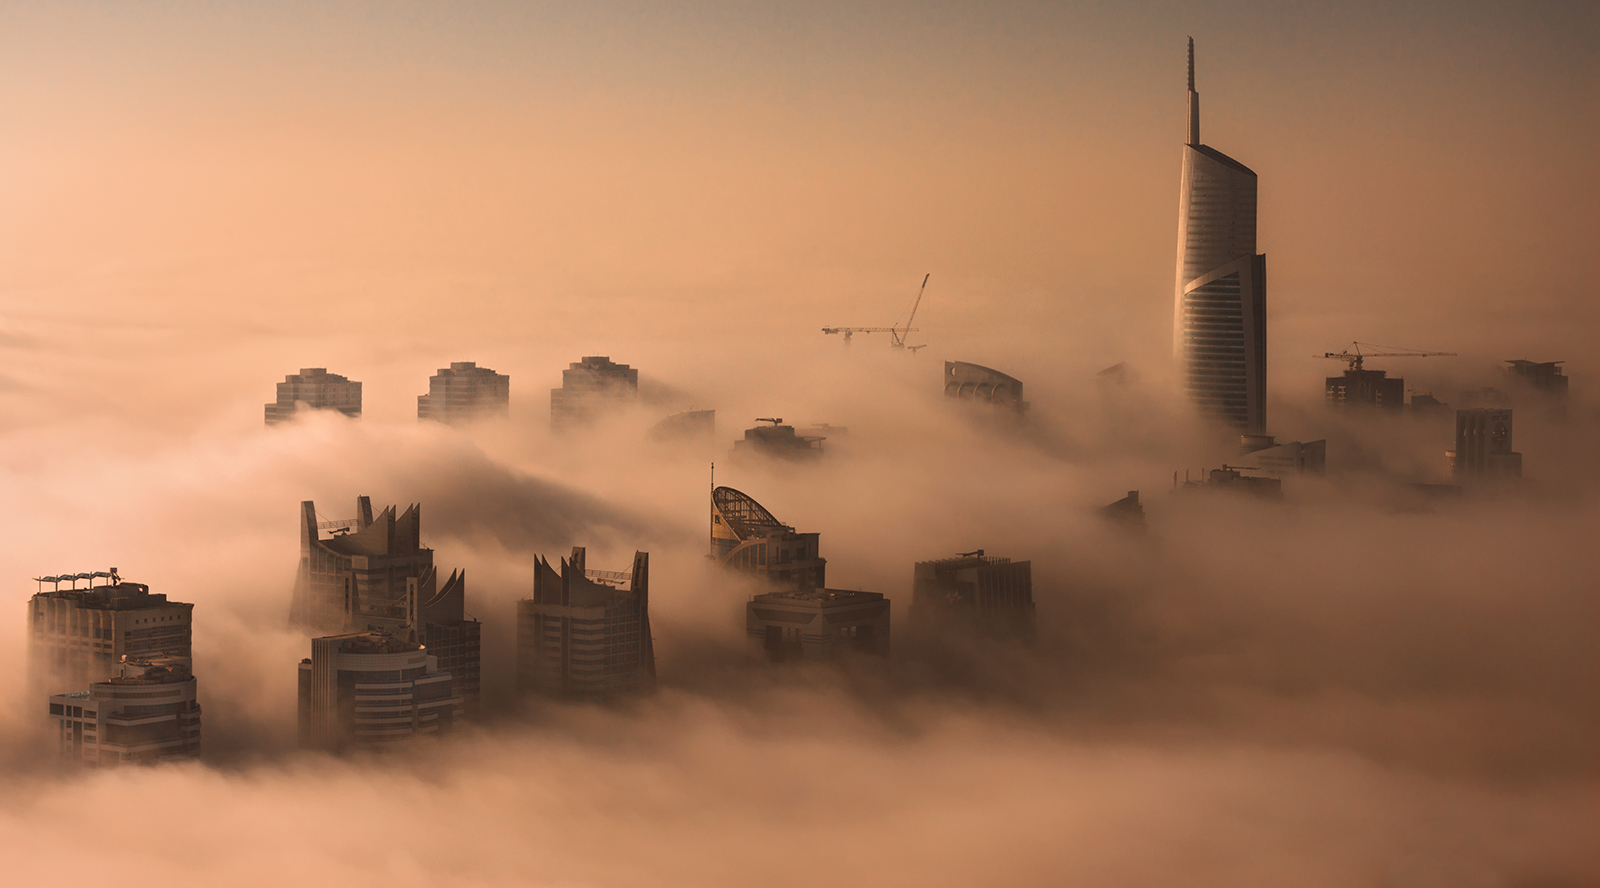 Dubai-Fog-Skylines-UAE-Rooftop-Towers-Dubai Photographer